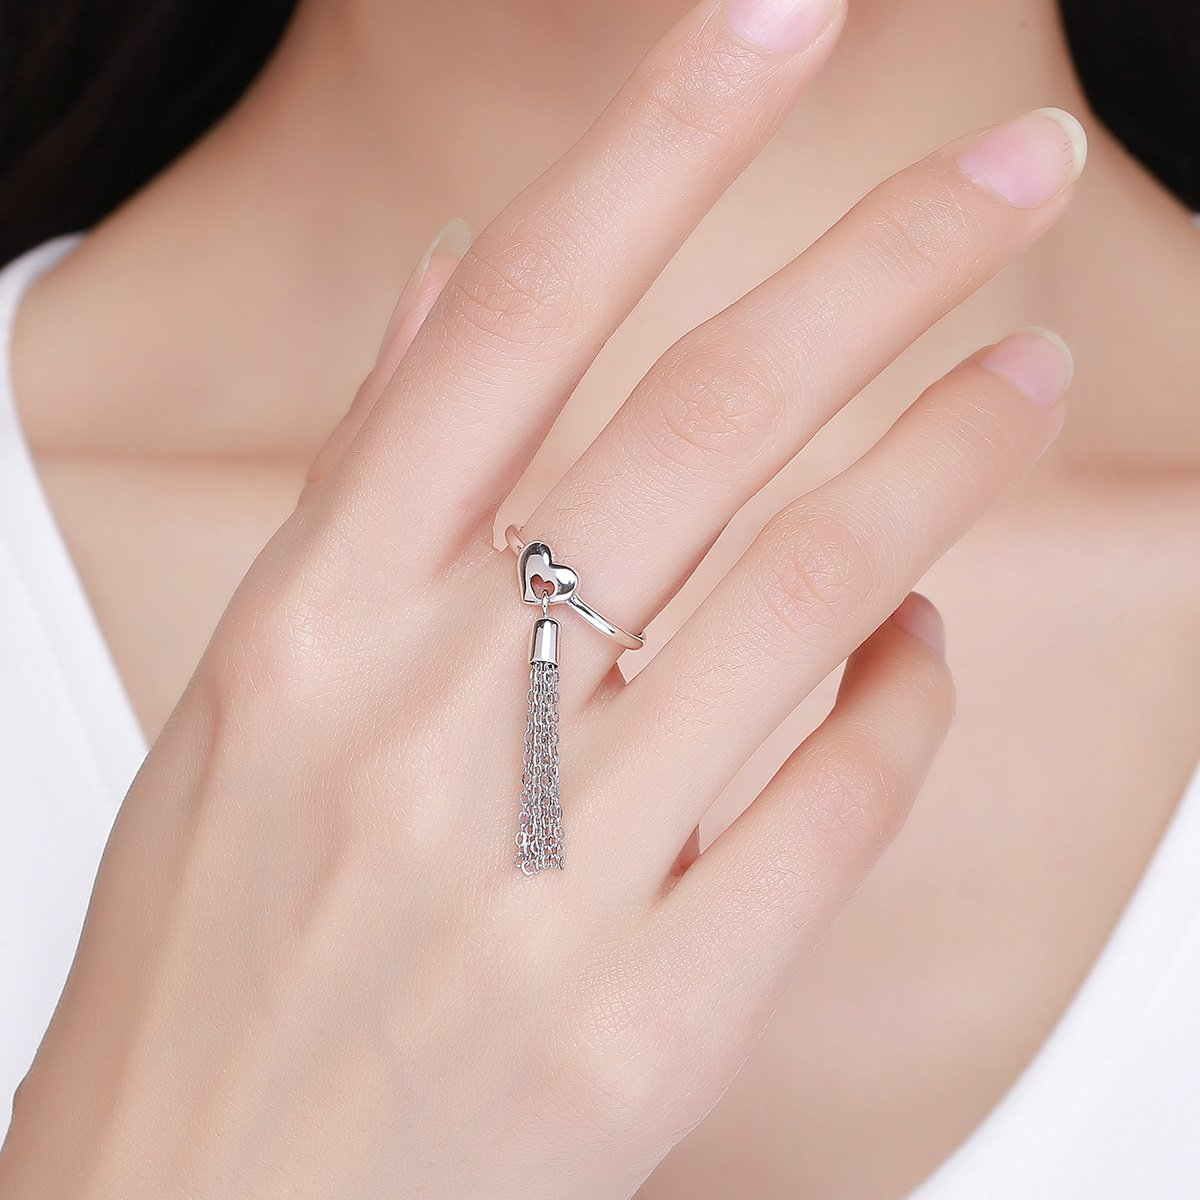 Everbling Long Chain Tassel in Heart 925 Sterling Silver Ring